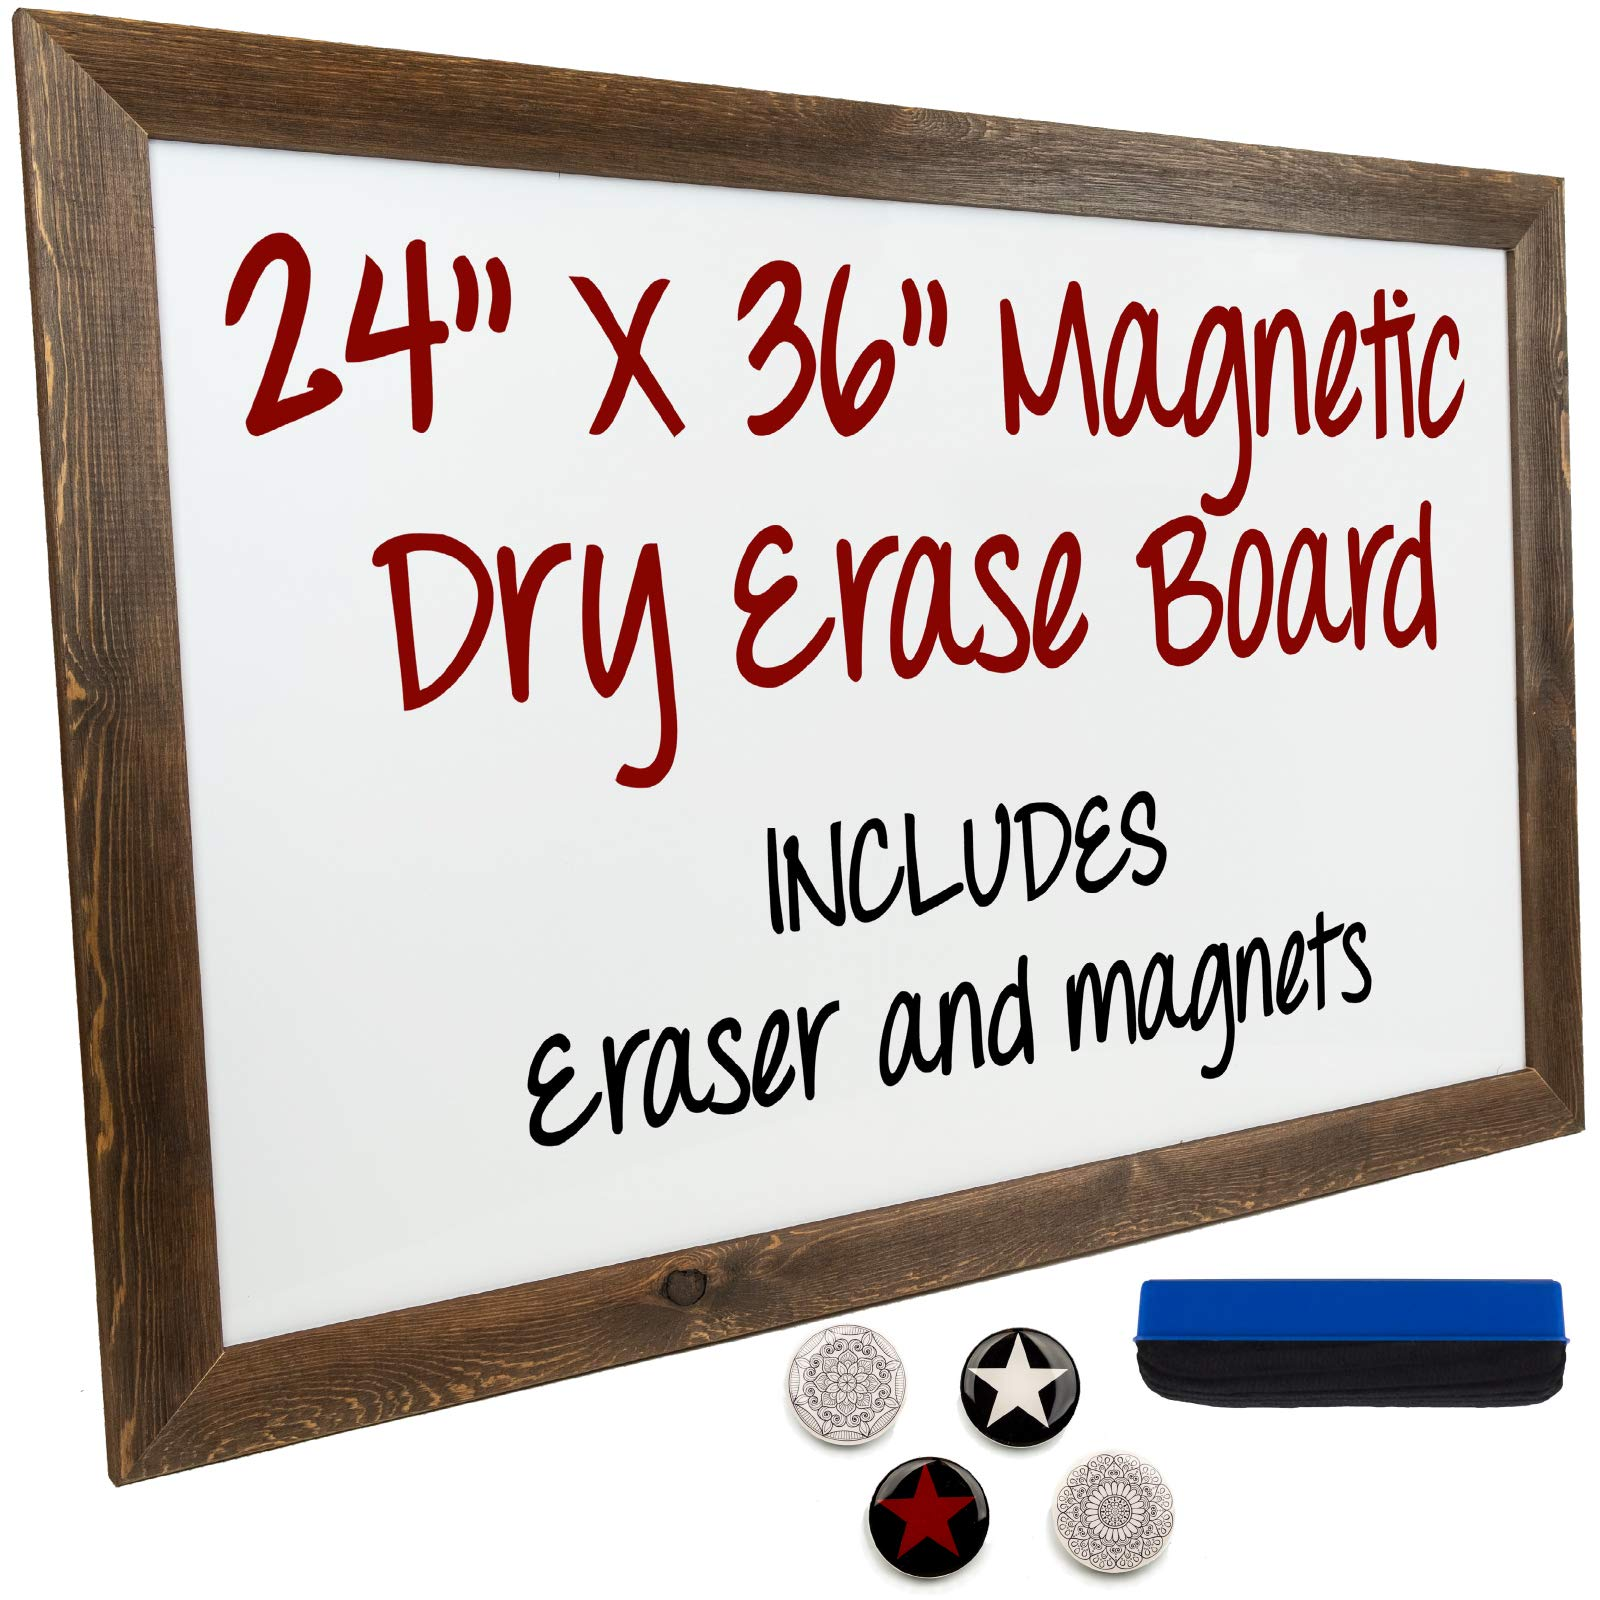 Dry Erase Magnetic White Board with Rustic Wooden Frame for Home, School, Office - 24''x36''